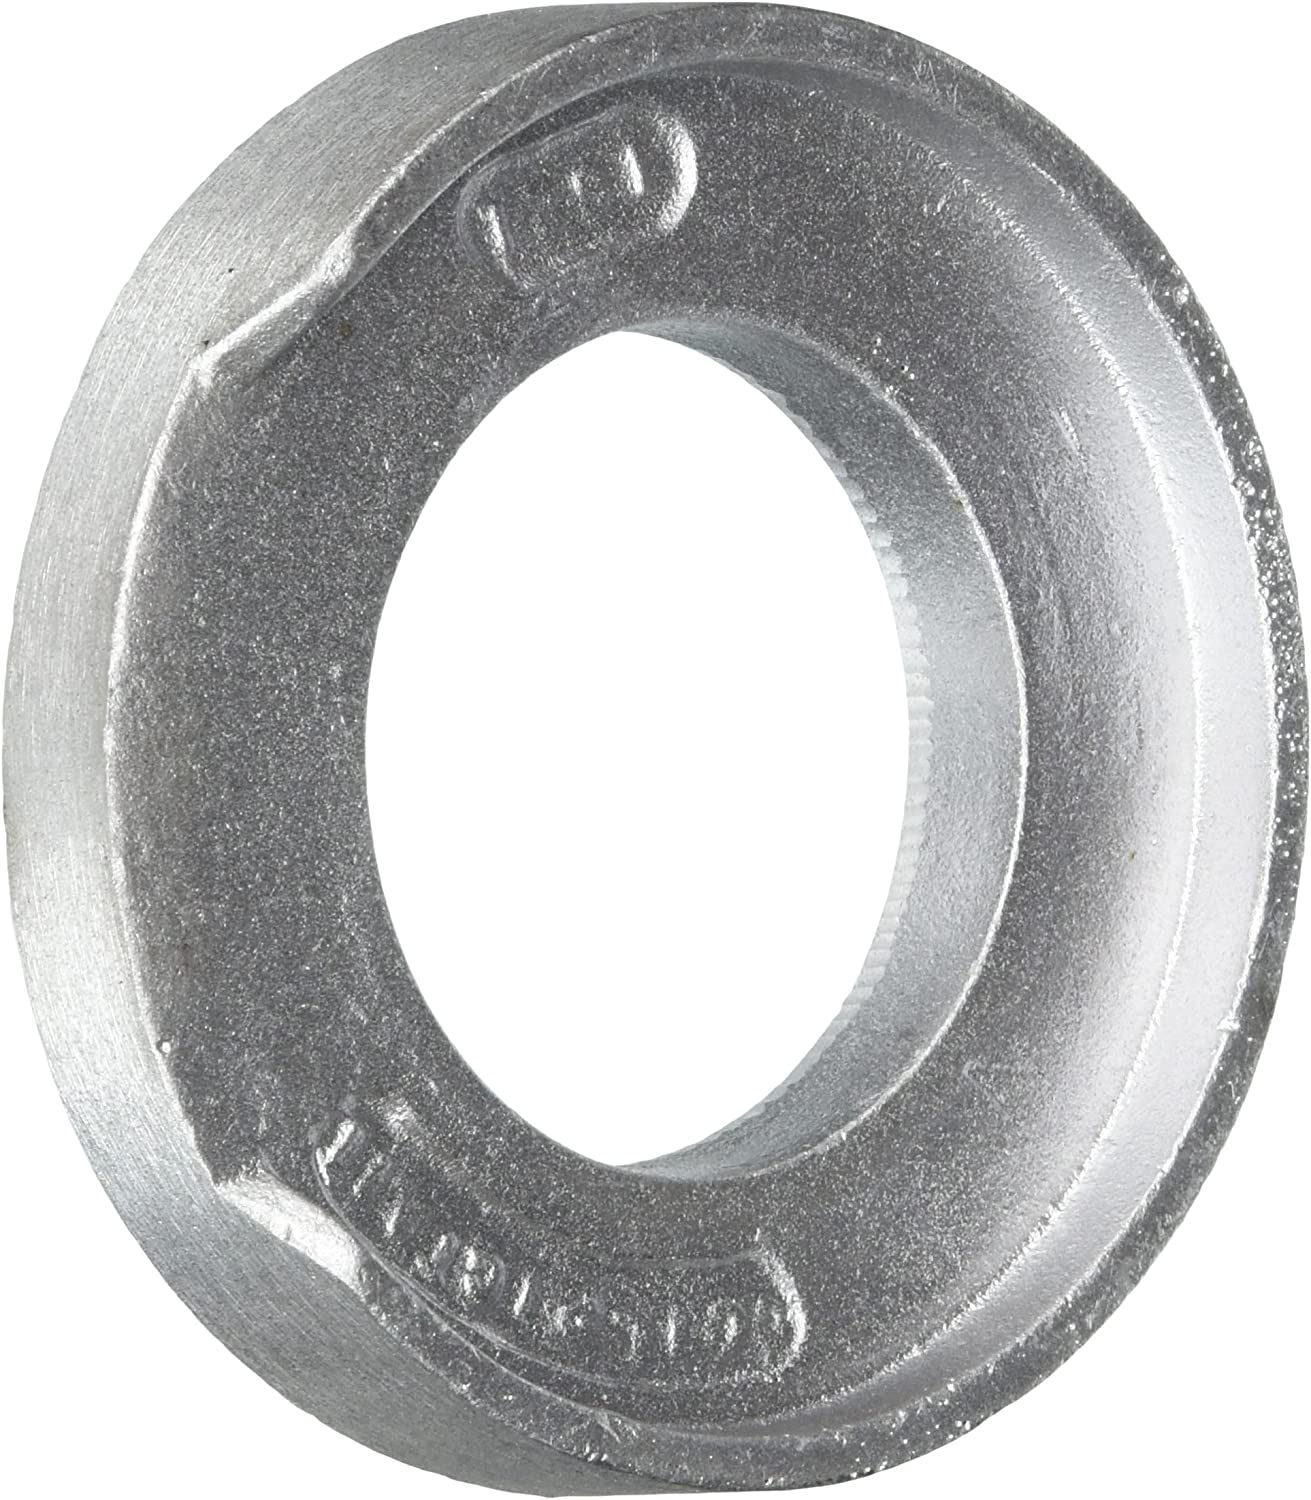 Specialty Products Company 2007 1//2 Coil Spring Spacer